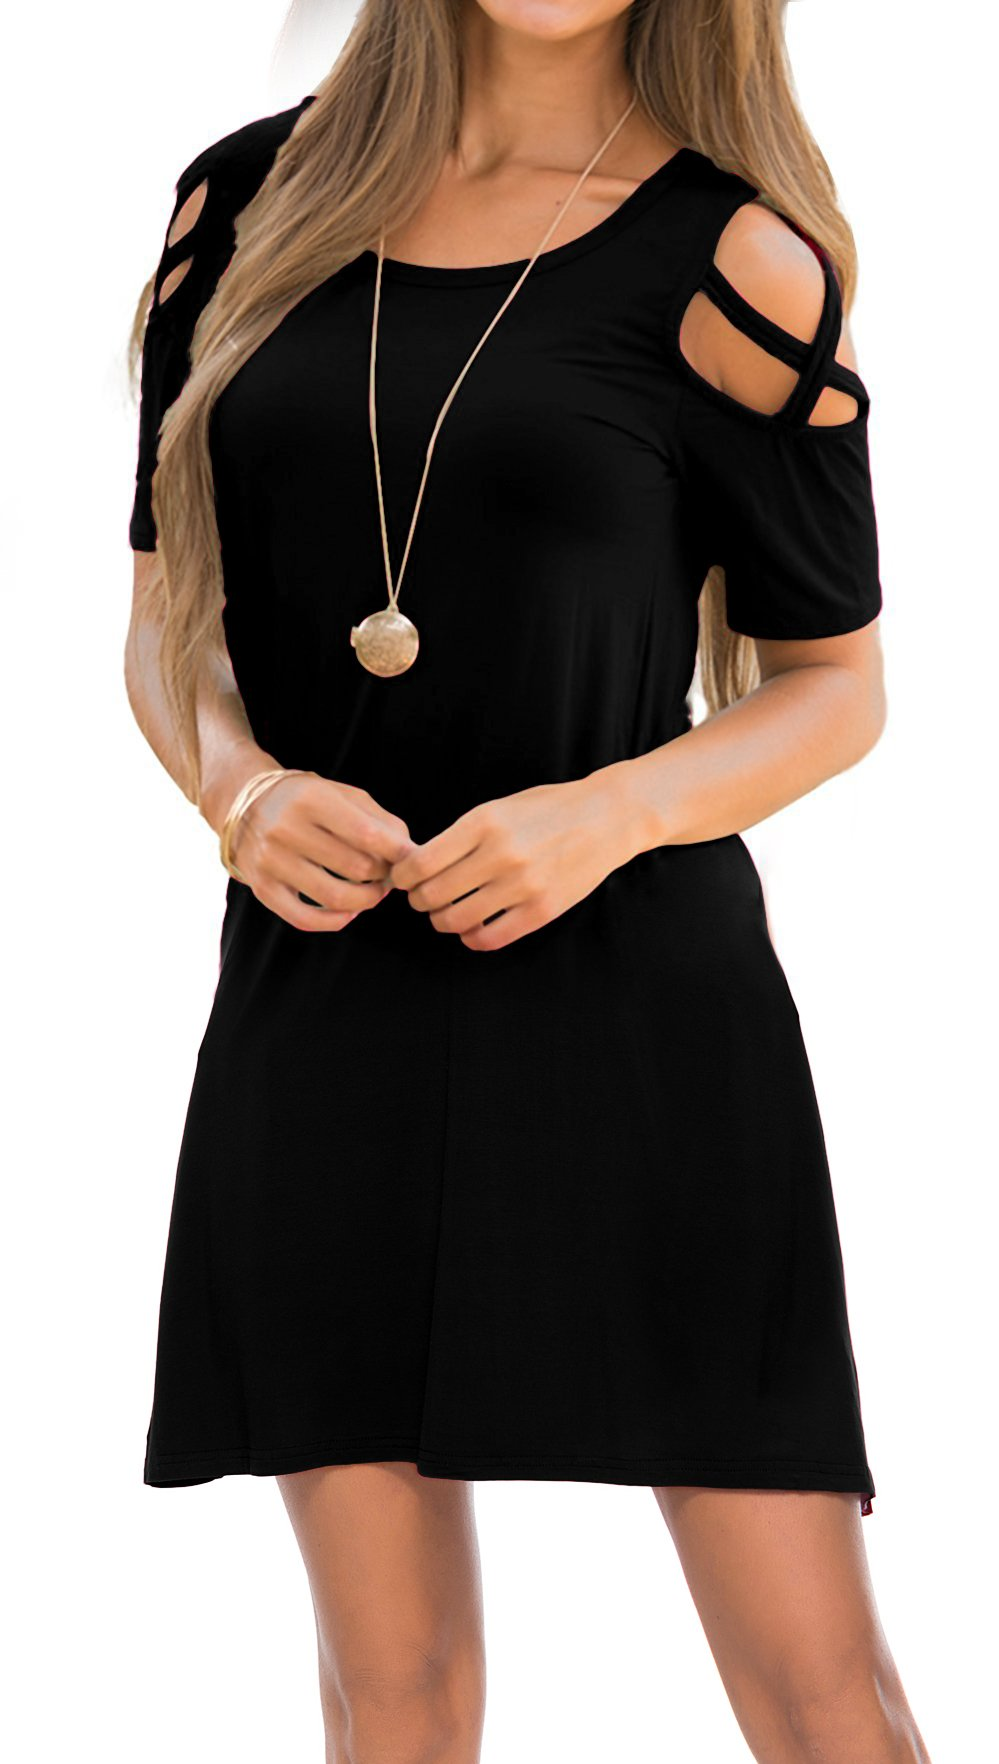 Oyanus Womens Summer Strappy Cold Shoulder Dress with Pocket Swing T-Shirt Loose Dresses Black M